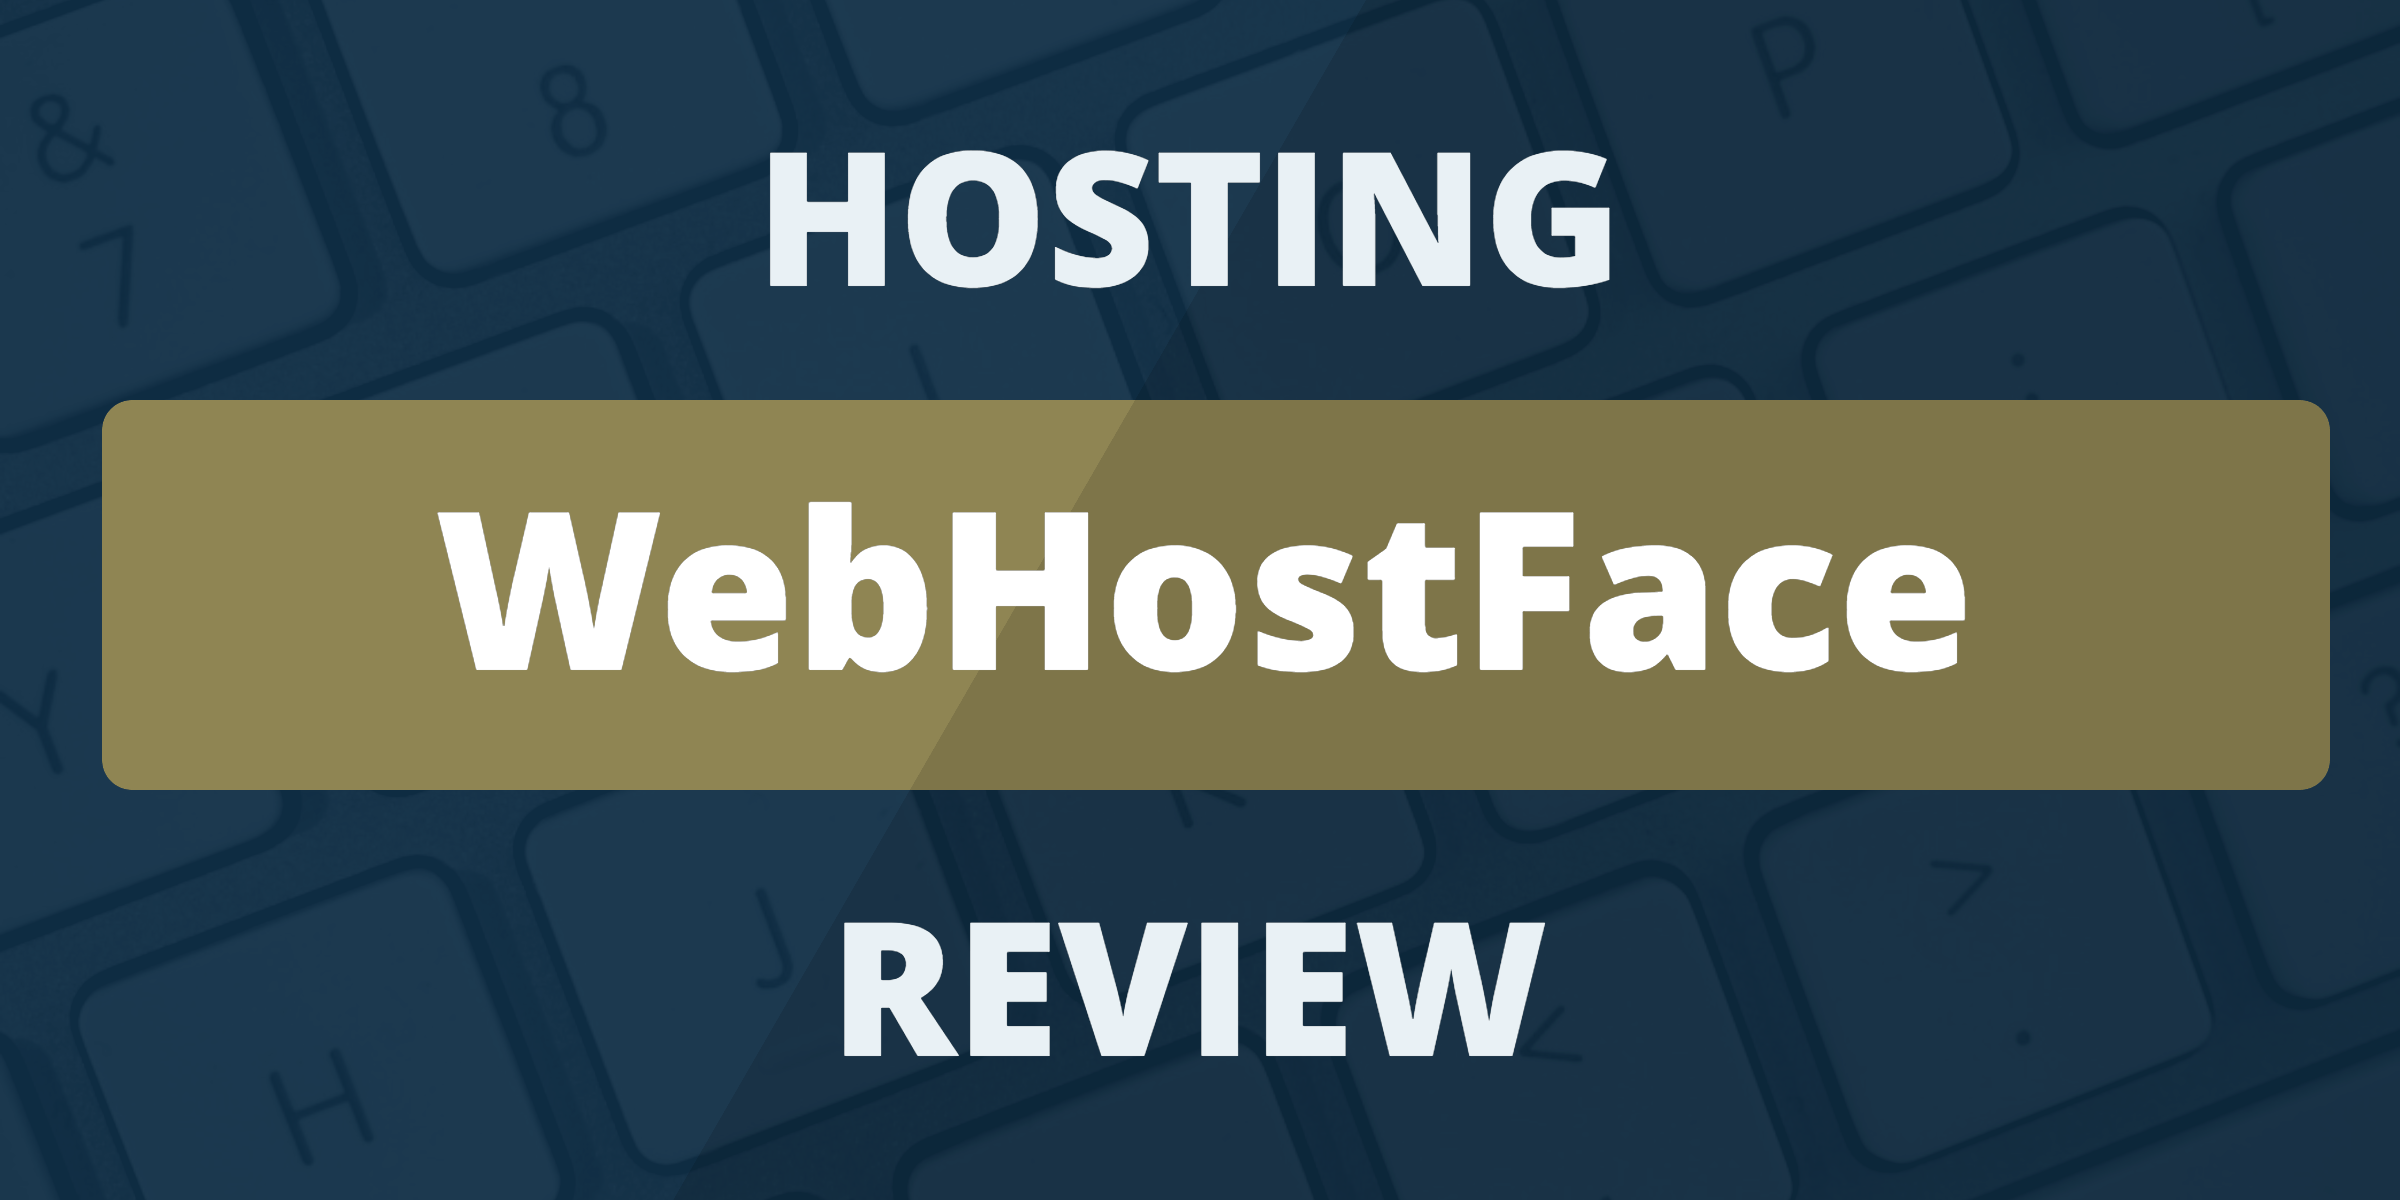 review hosting webhostface